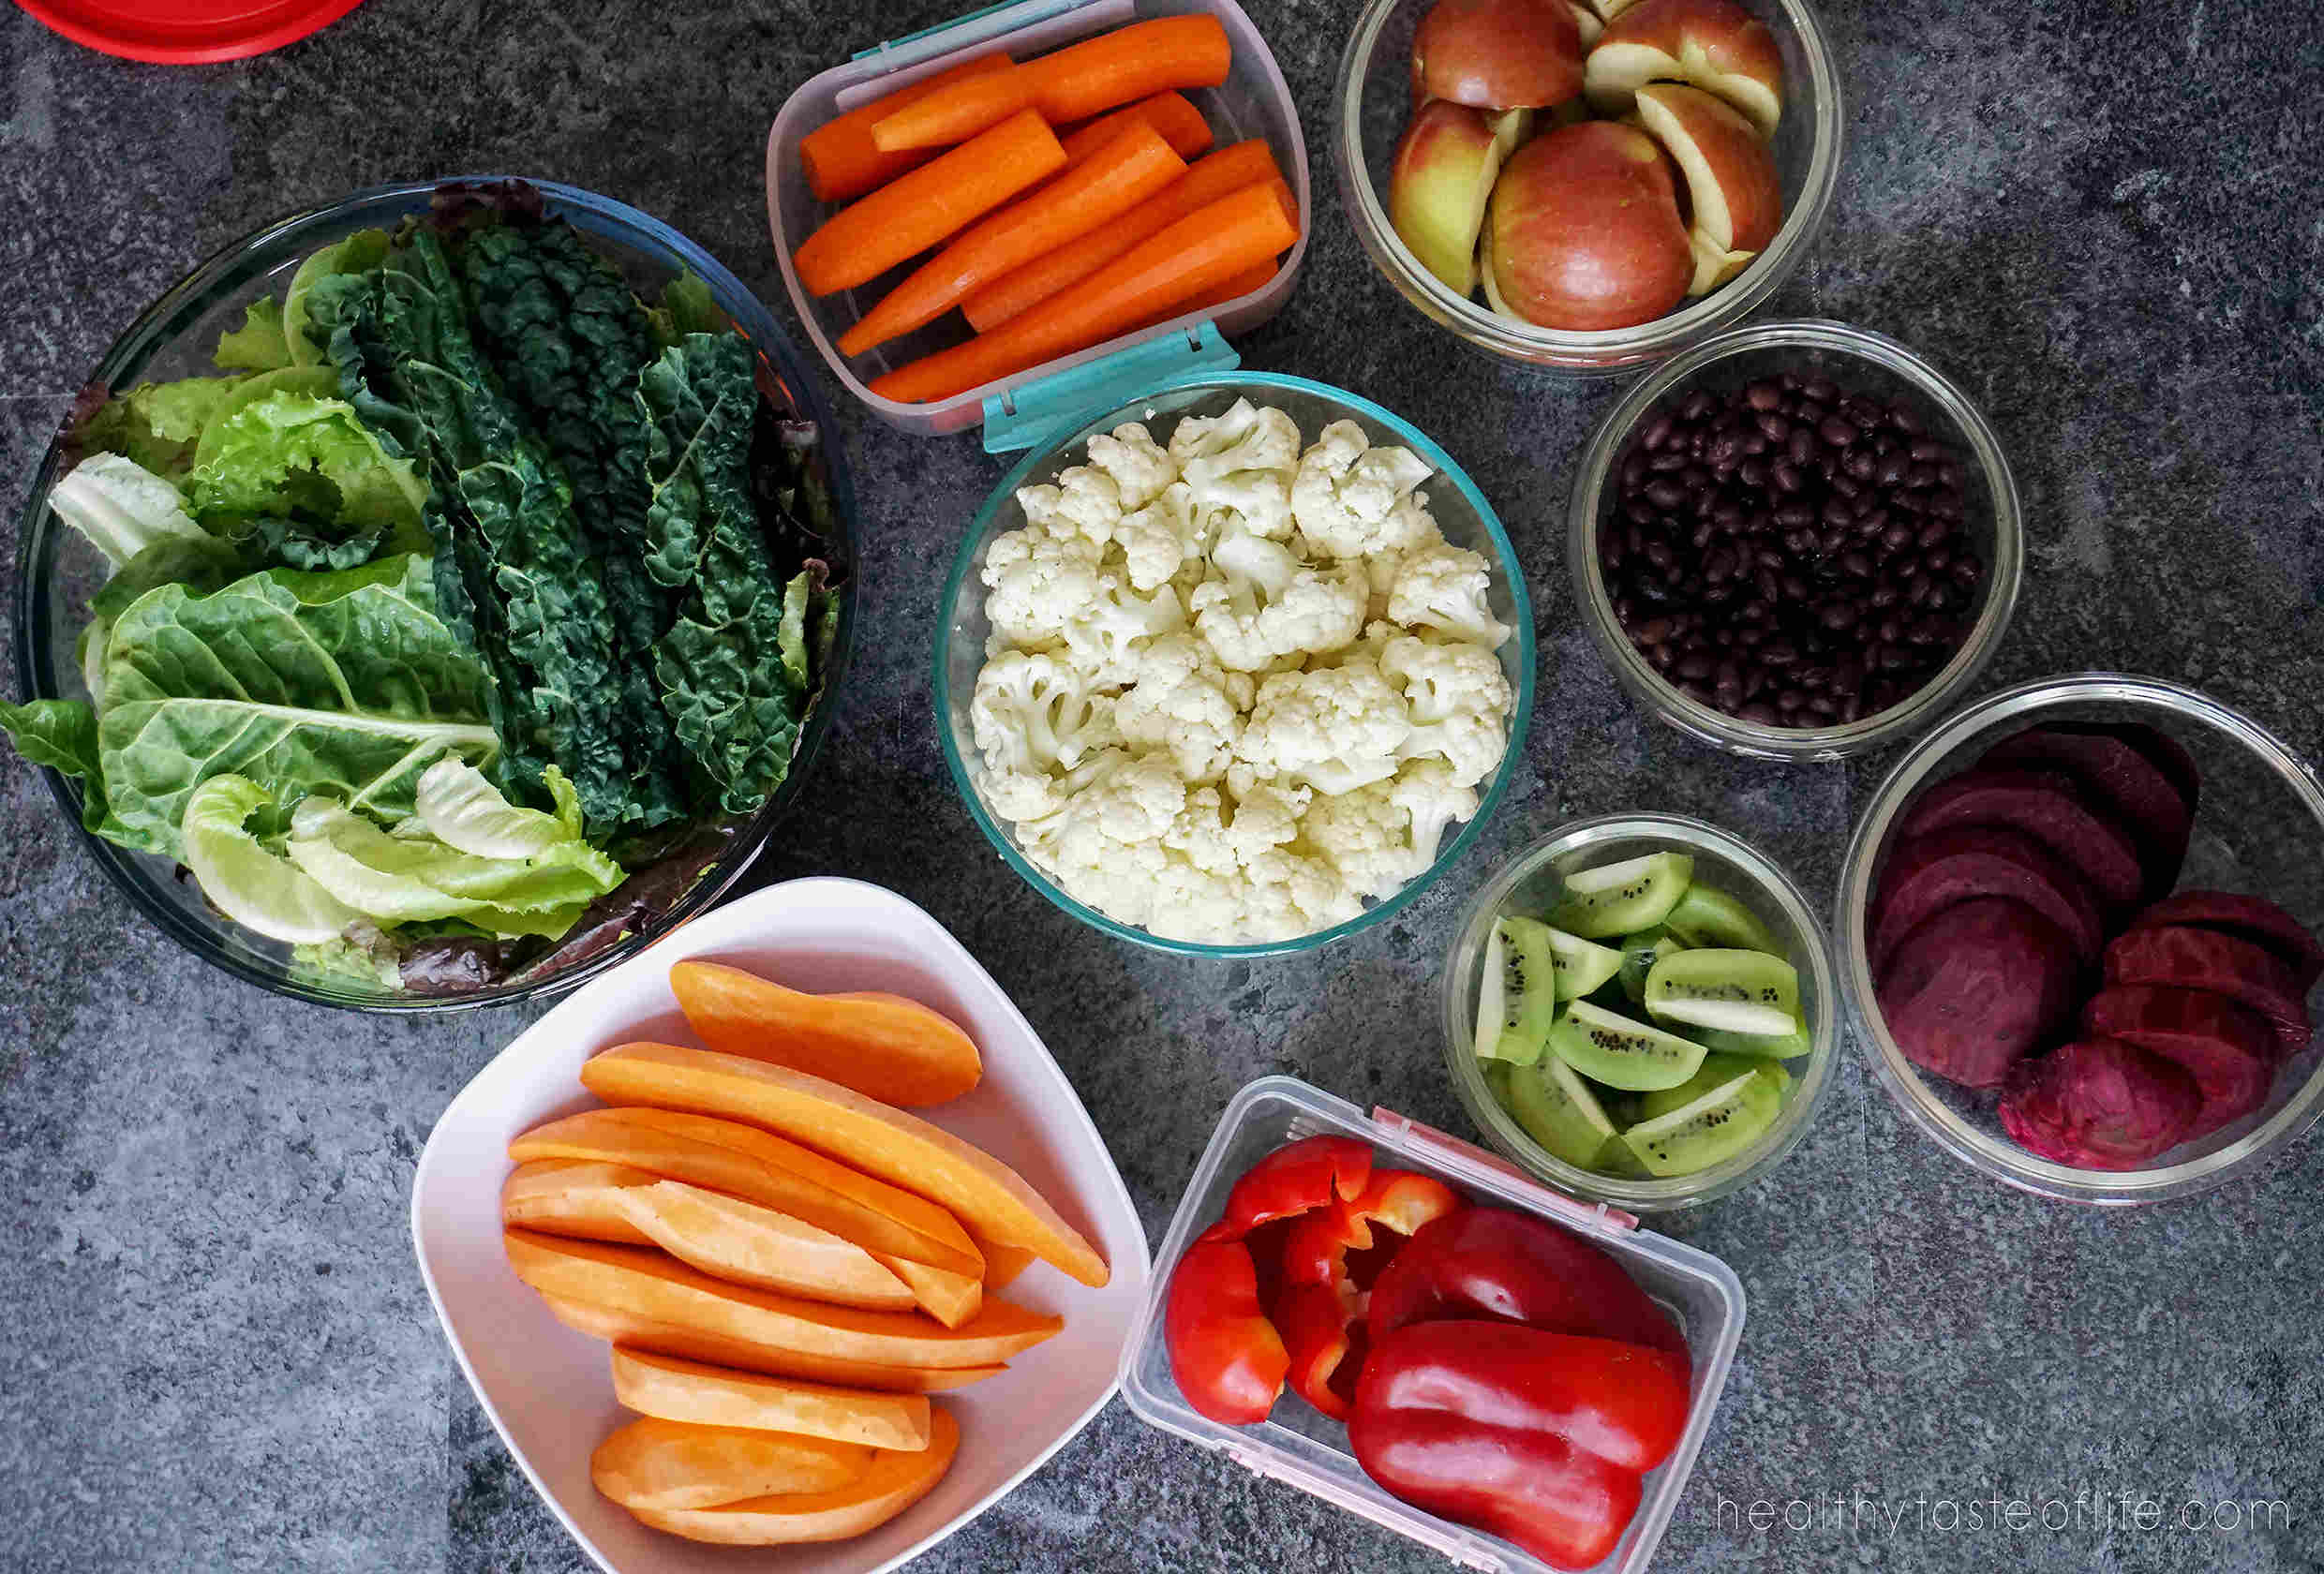 Learn a few meal prep tips for clean eating: how to store and organize fresh produce and cooked food in order to keep it fresh longer. These are great meal prep tips will teach you how to store cut veggies and fruits to last longer.